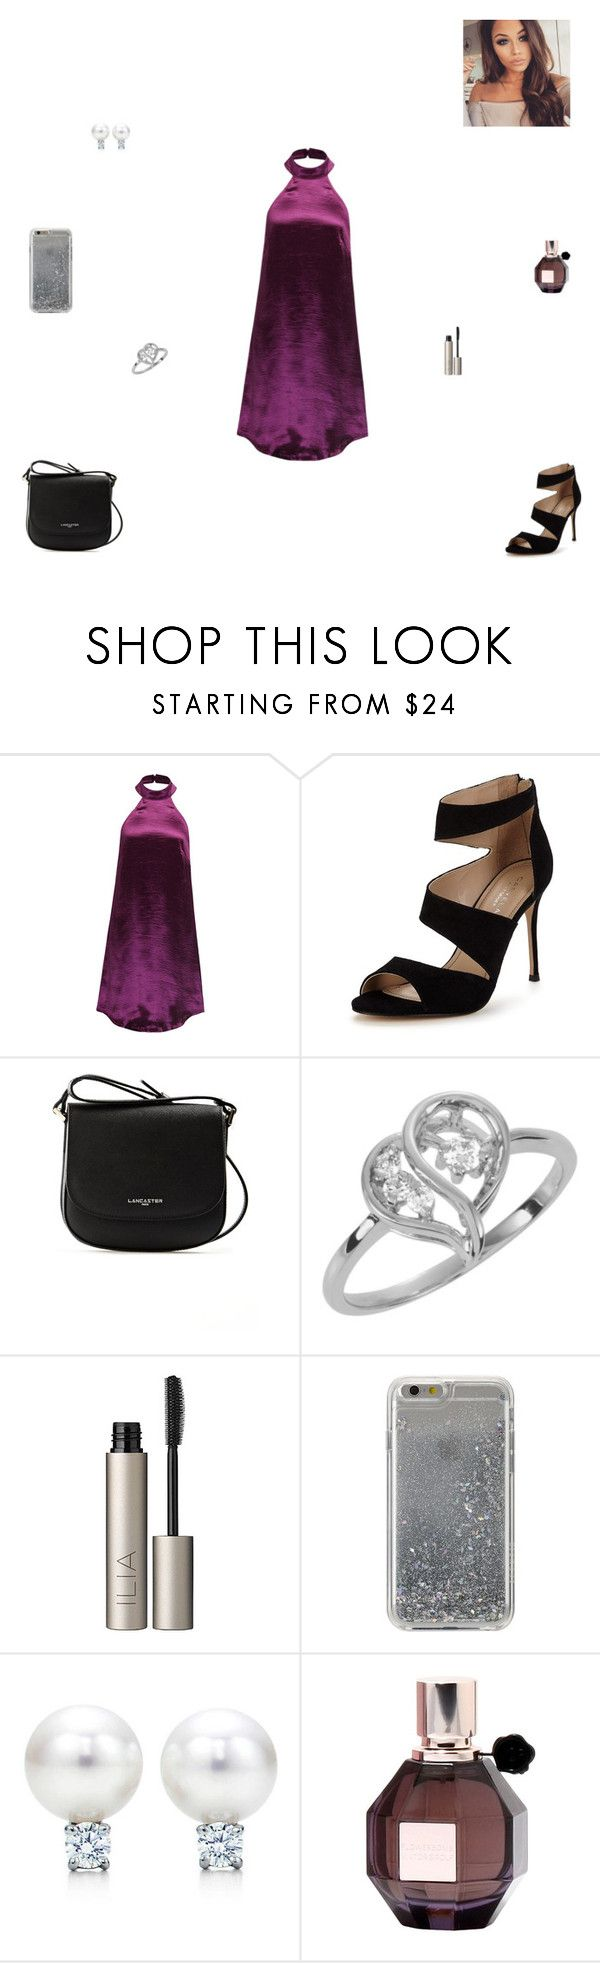 """dressy party"" by synclairel ❤ liked on Polyvore featuring WithChic, Carvela, Lancaster, Ilia, Agent 18, Viktor & Rolf, Winter, cute, casual and ootd"